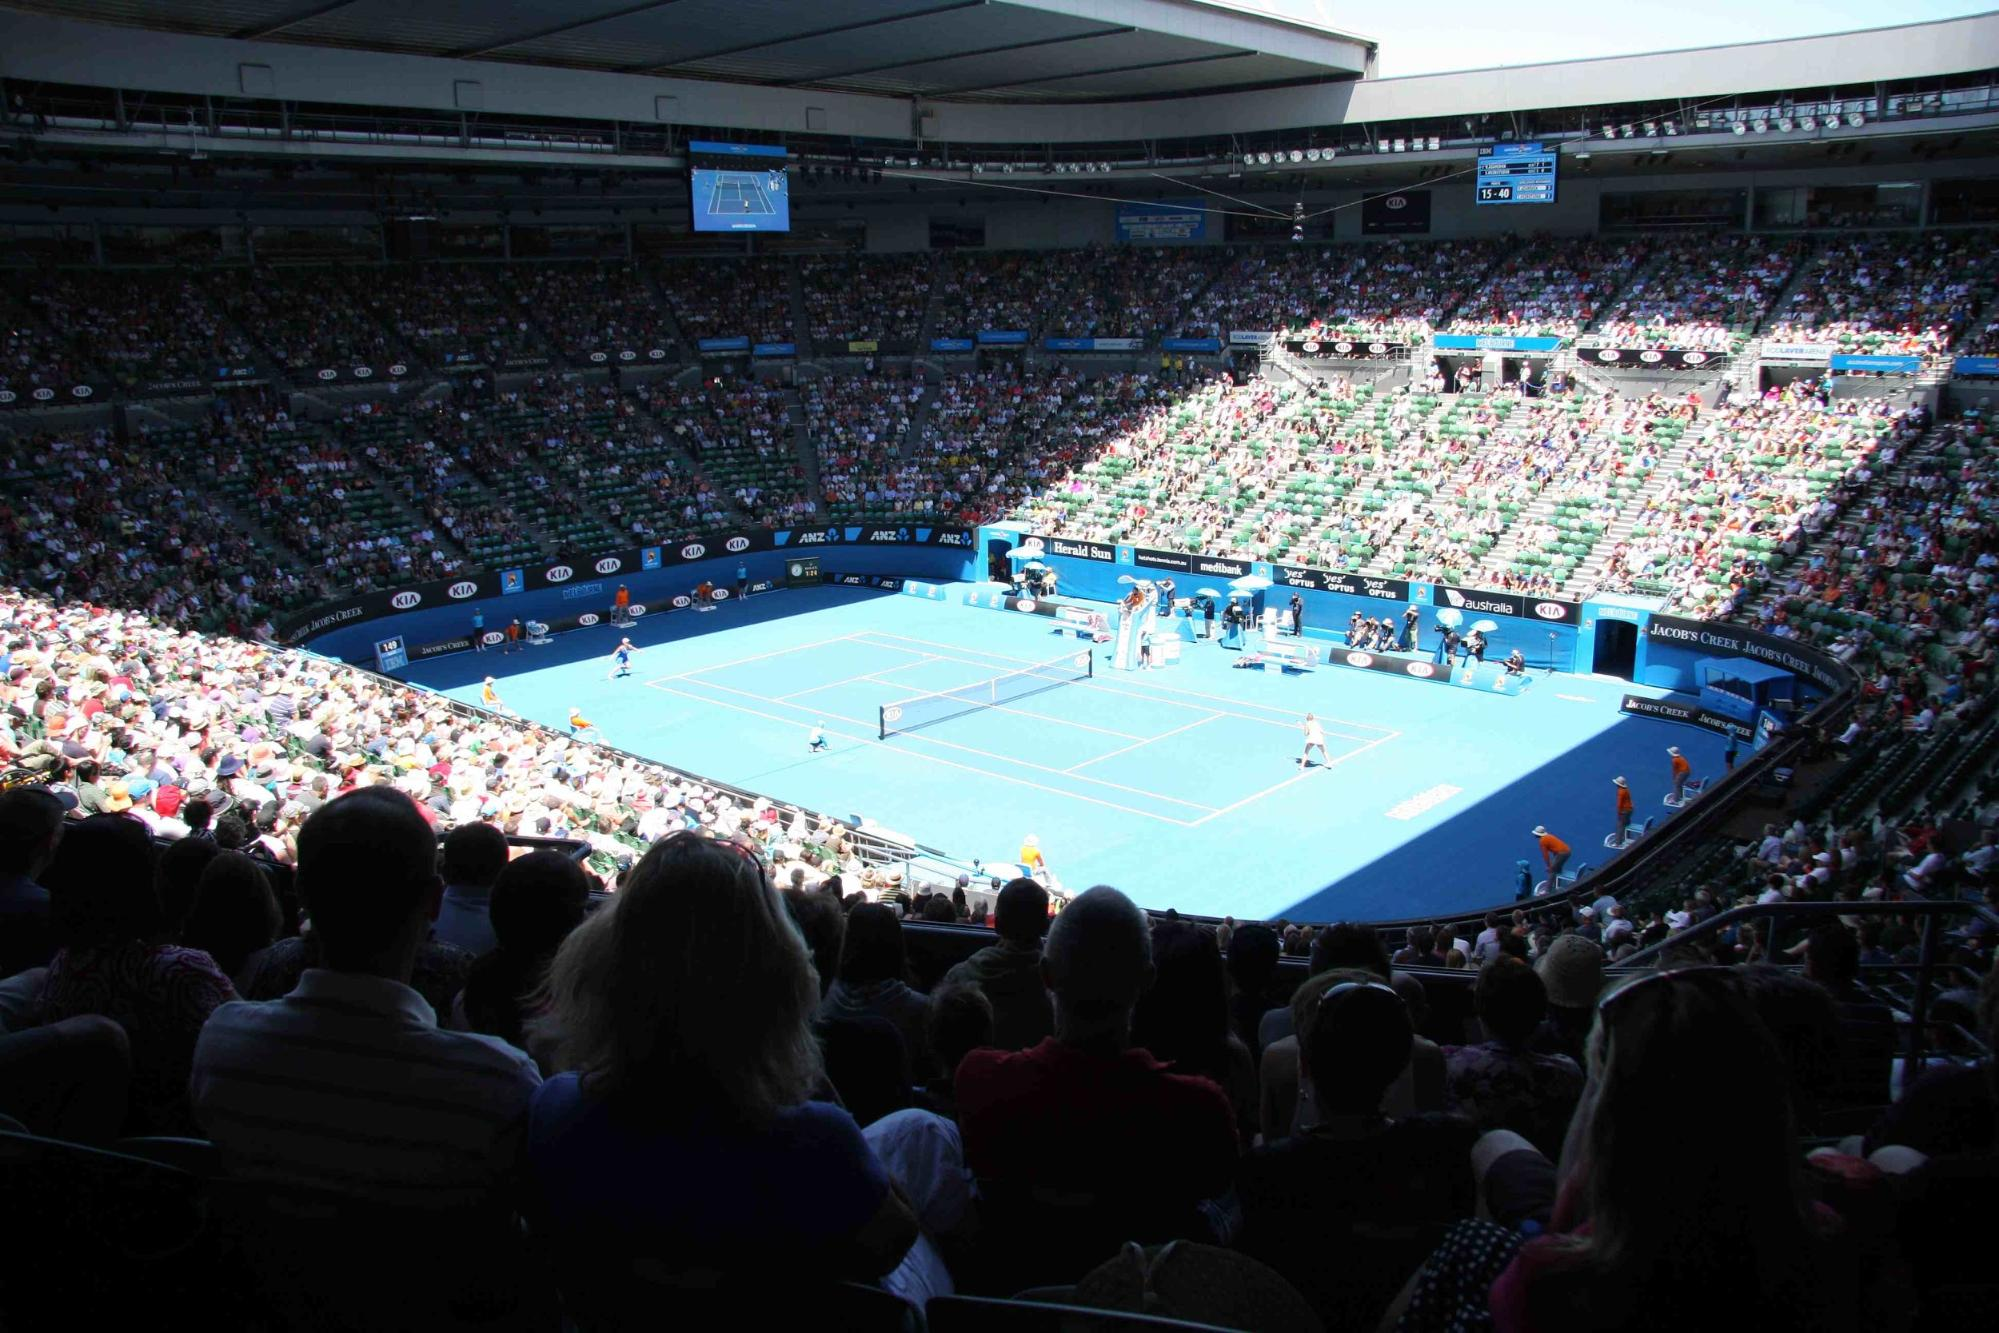 Australian Open Seating Guide Championship Tennis Tours